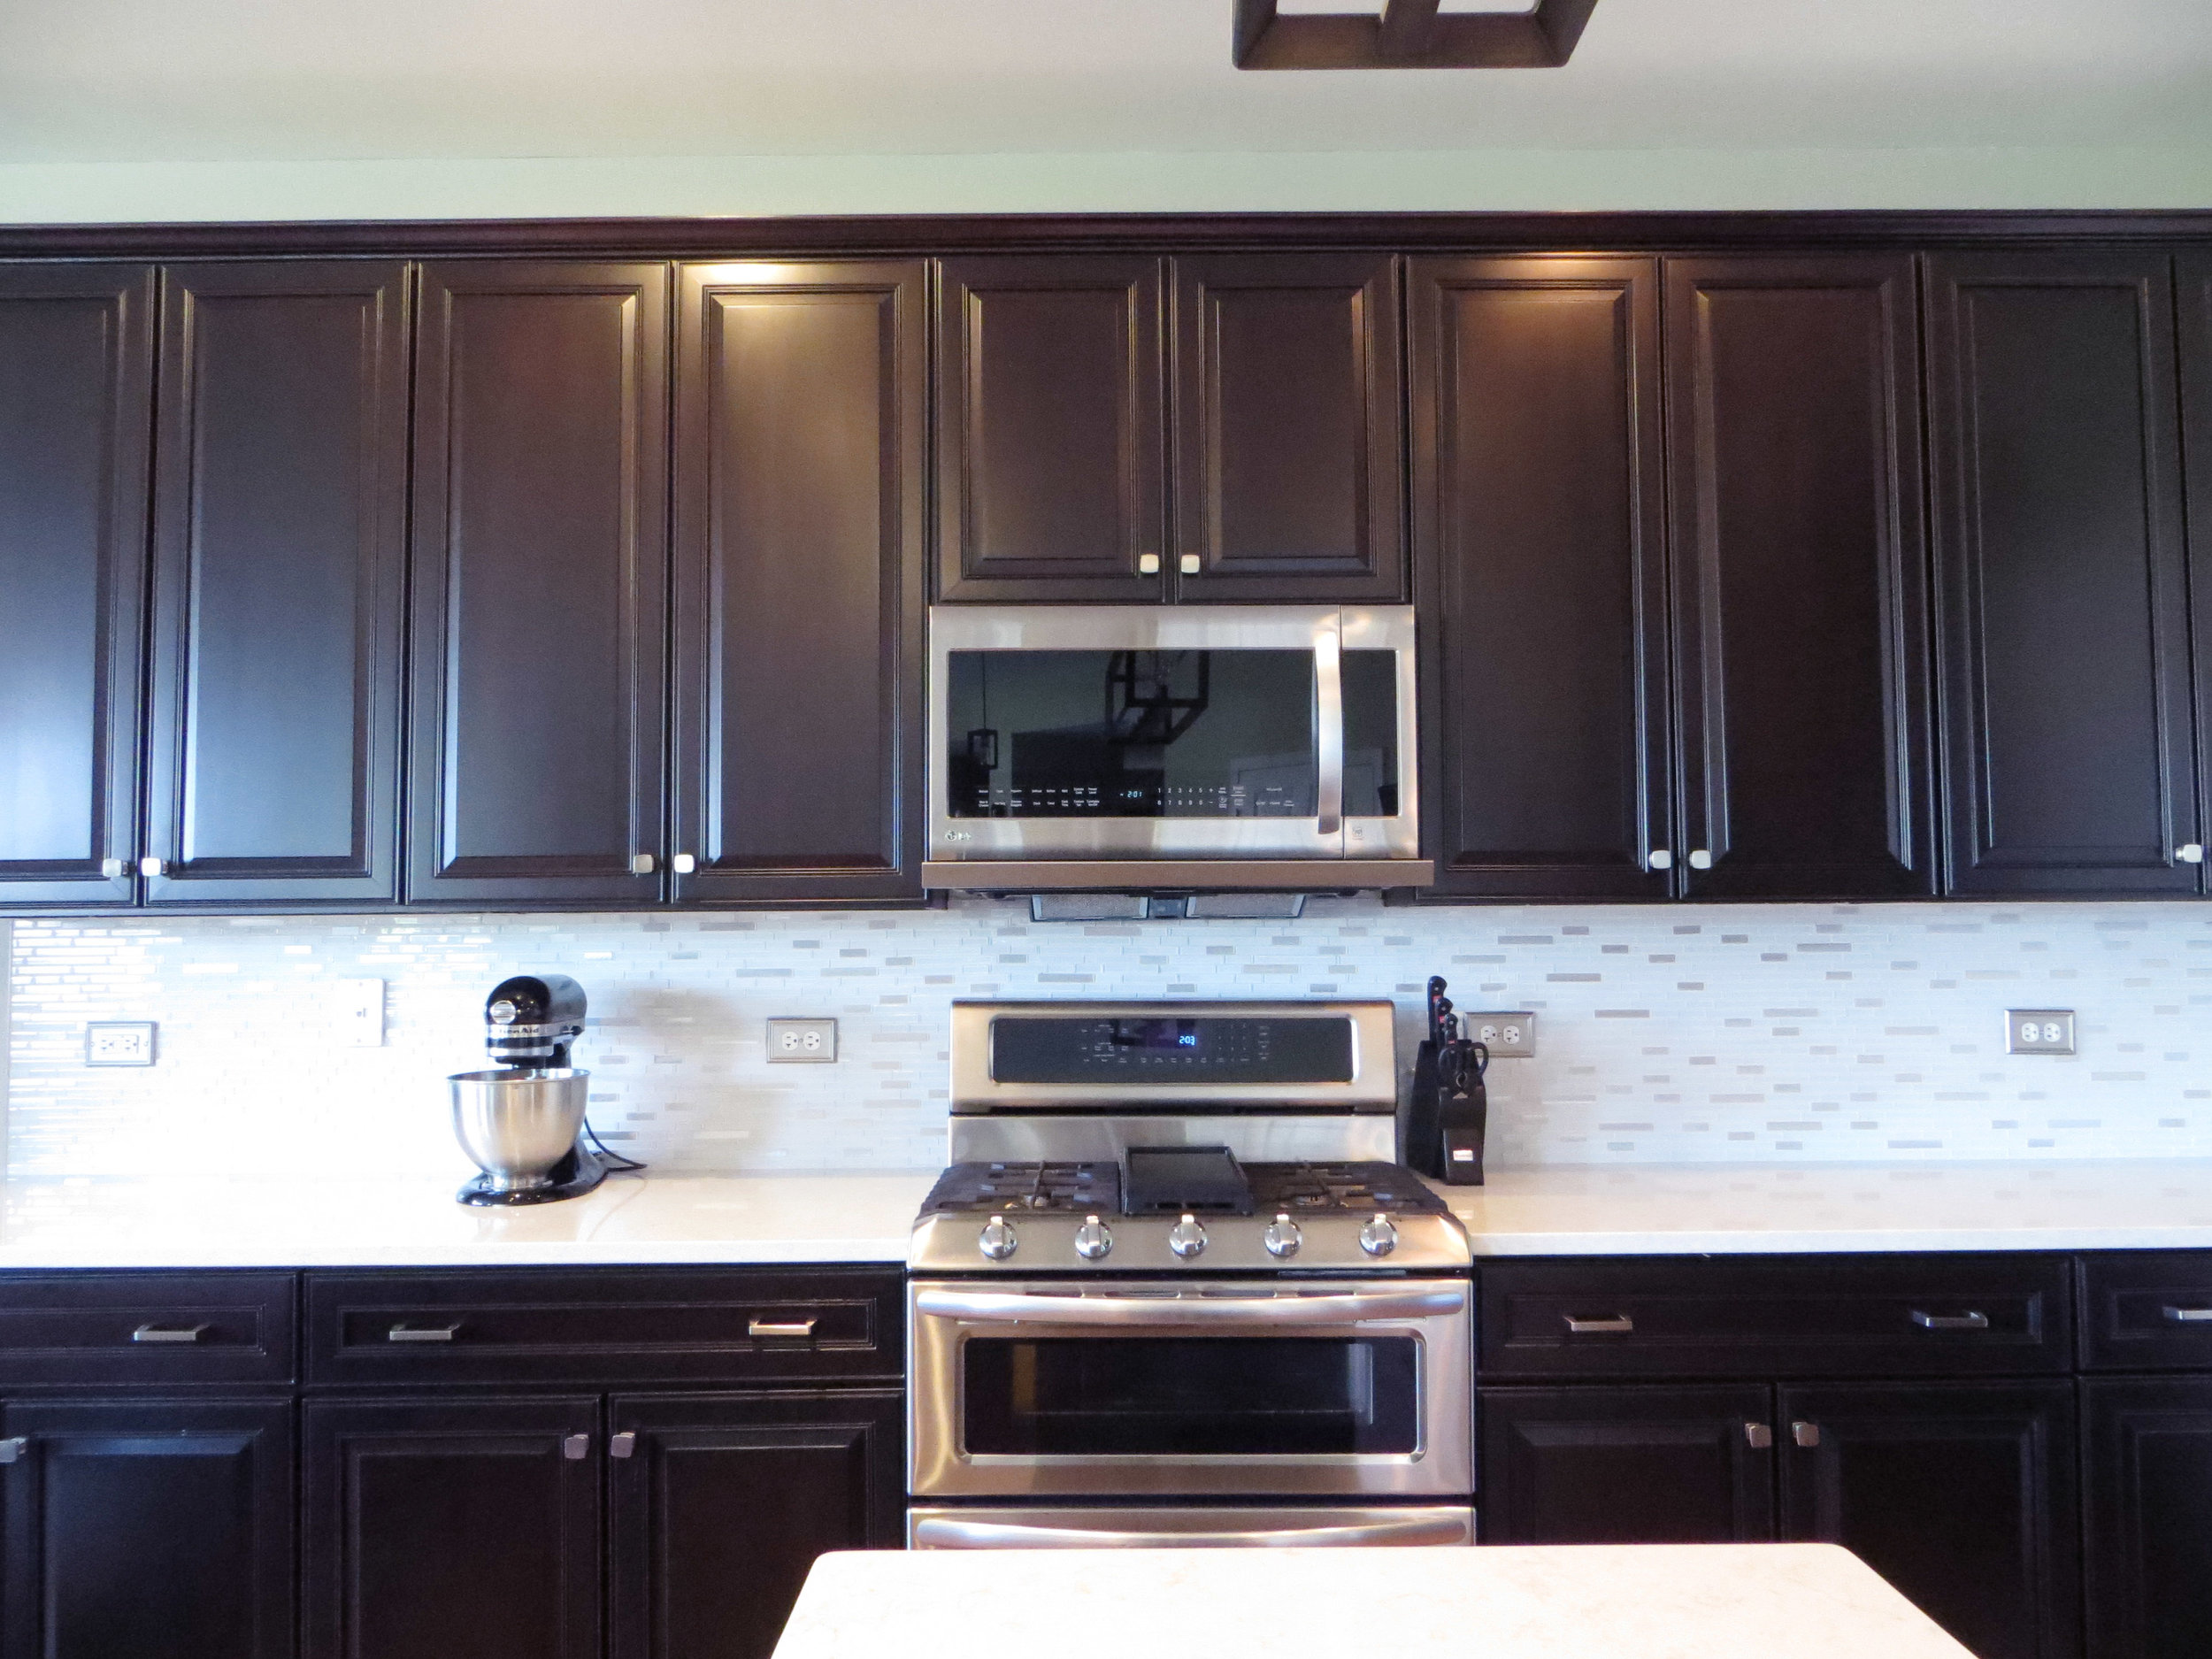 kitchen after stove.jpg